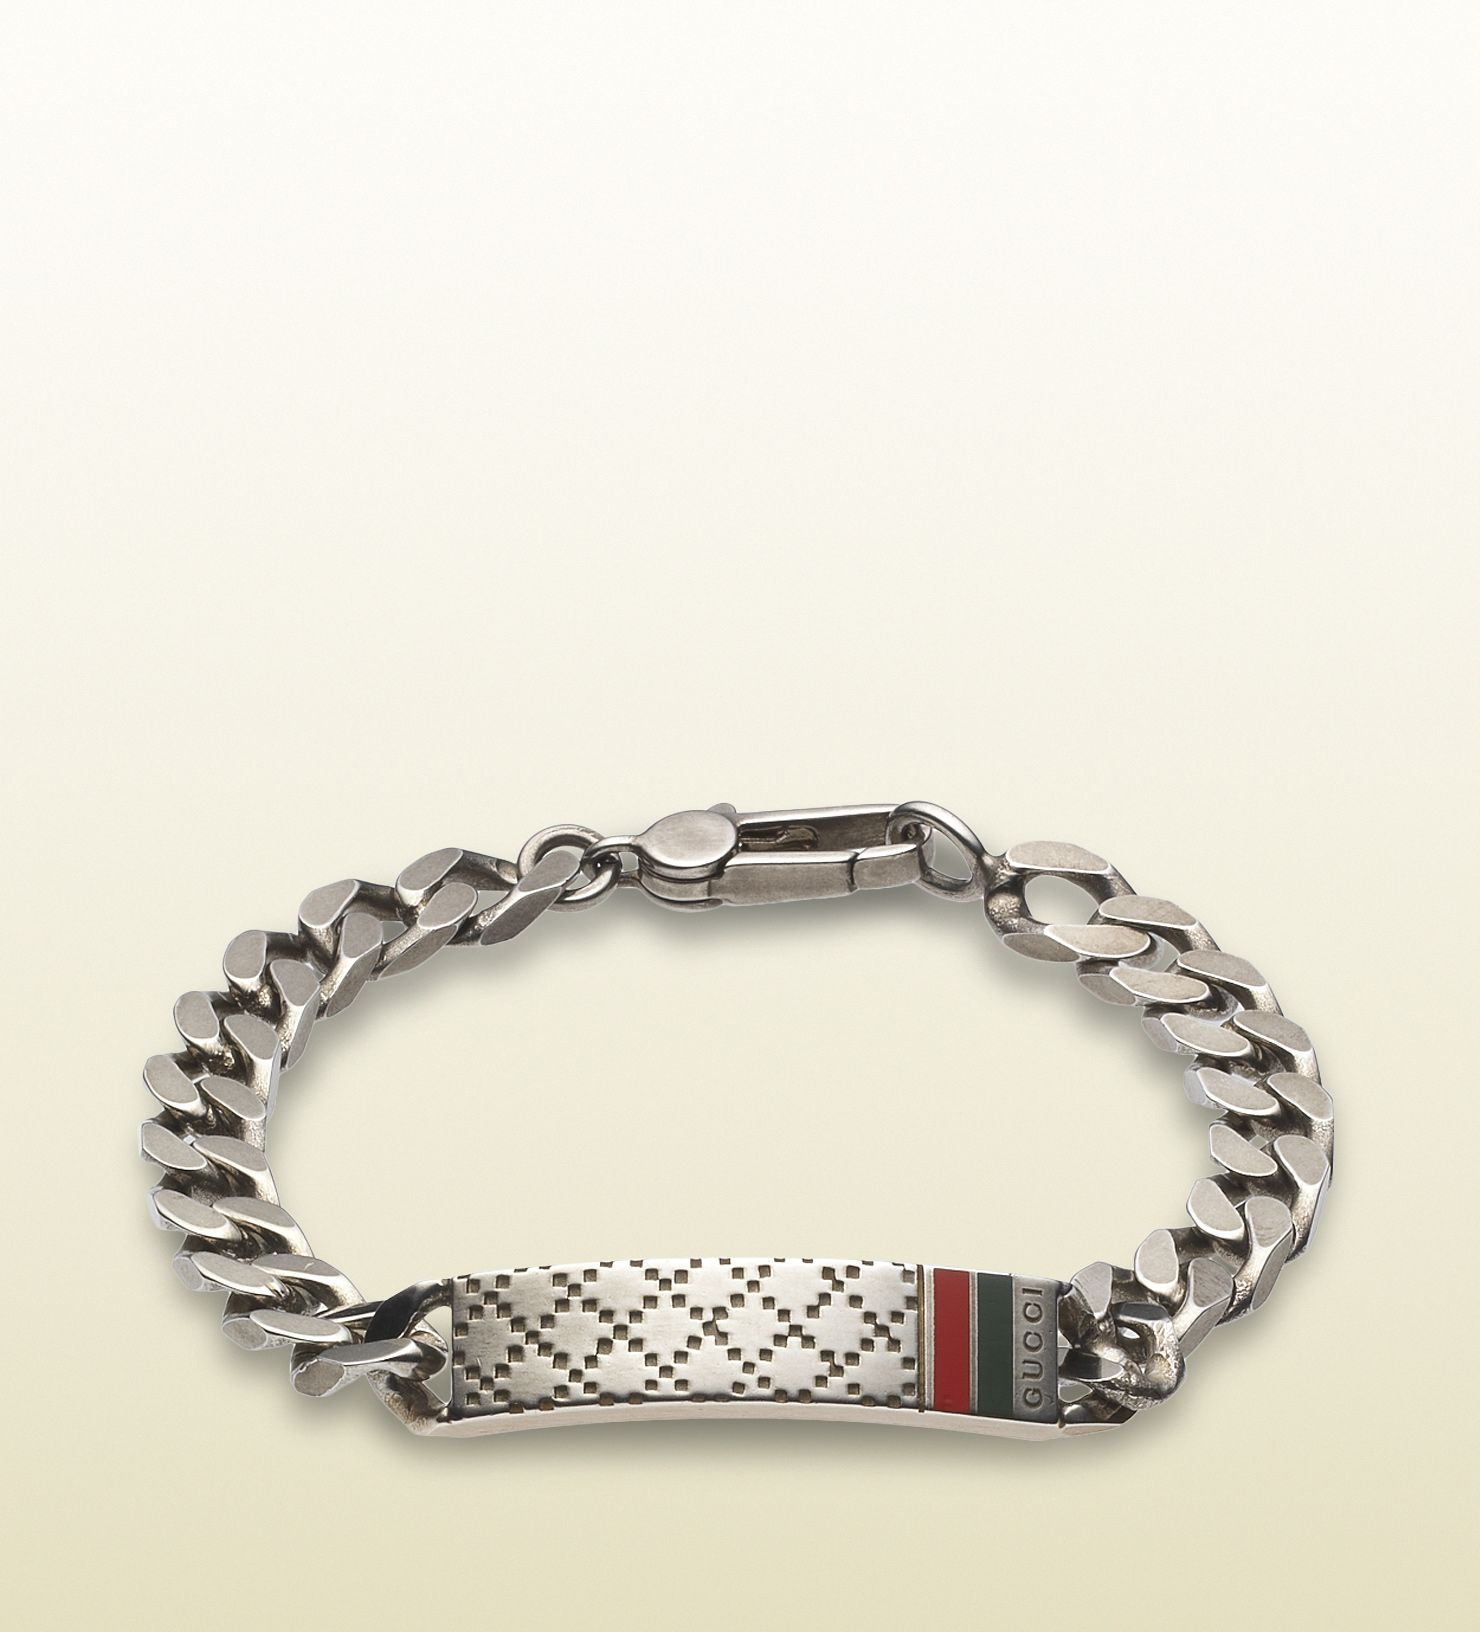 Gucci Bracelet With Diamante Motif 295676j89l08518